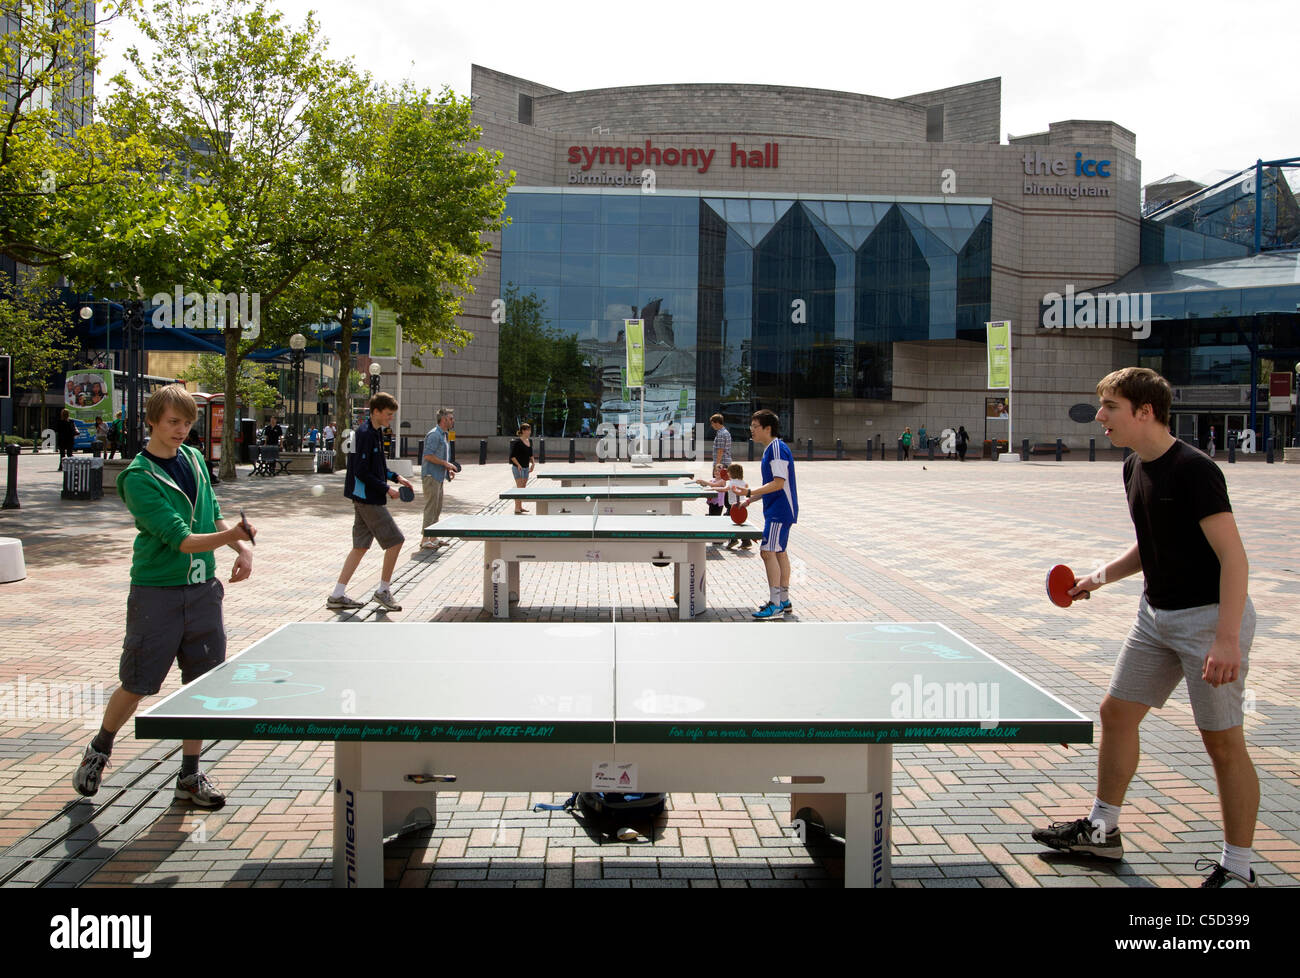 People playing ping pong in Broad Street Birmingham. Over 50 ping pong tables were set up in various locations around - Stock Image